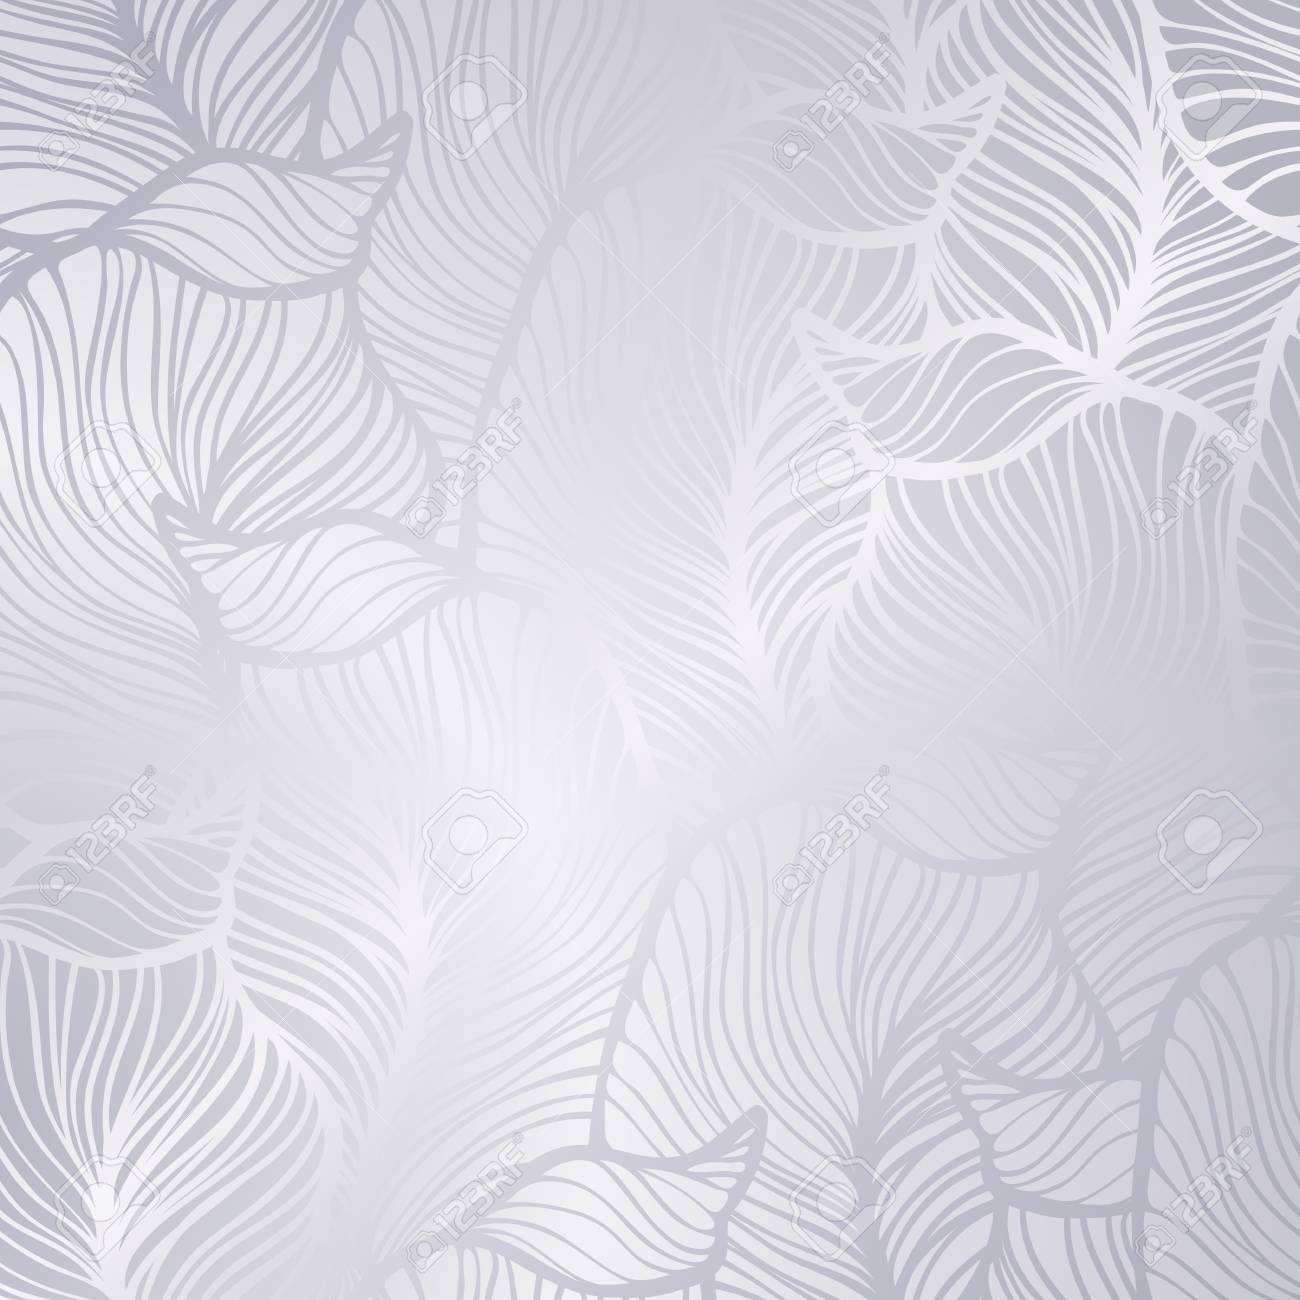 Vector vintage silver card with seamless damask pattern EPS 10 - 128441511